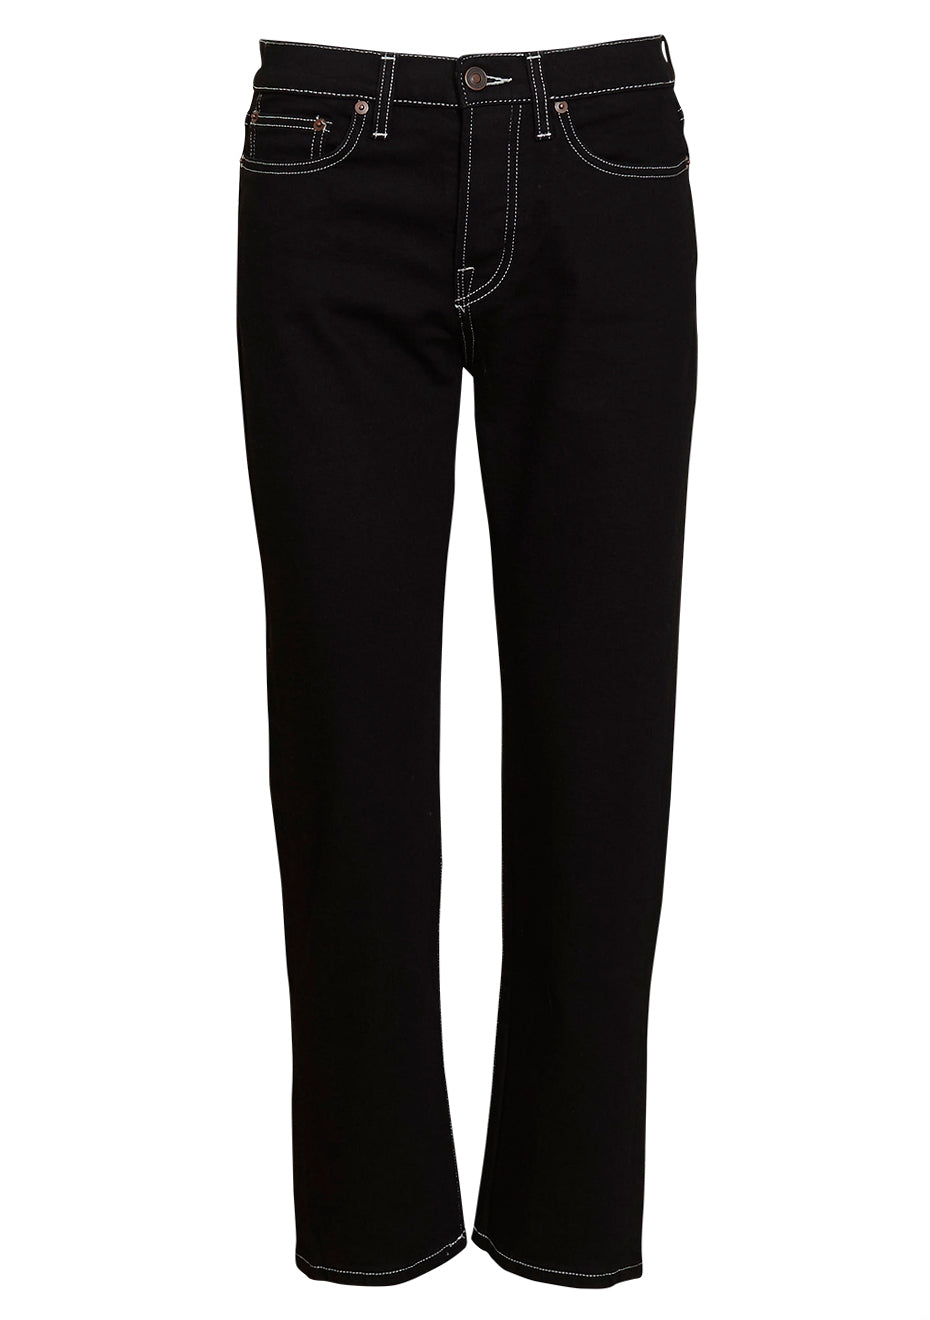 CW002 Black Rinse Contrast Classic Fit Jeans